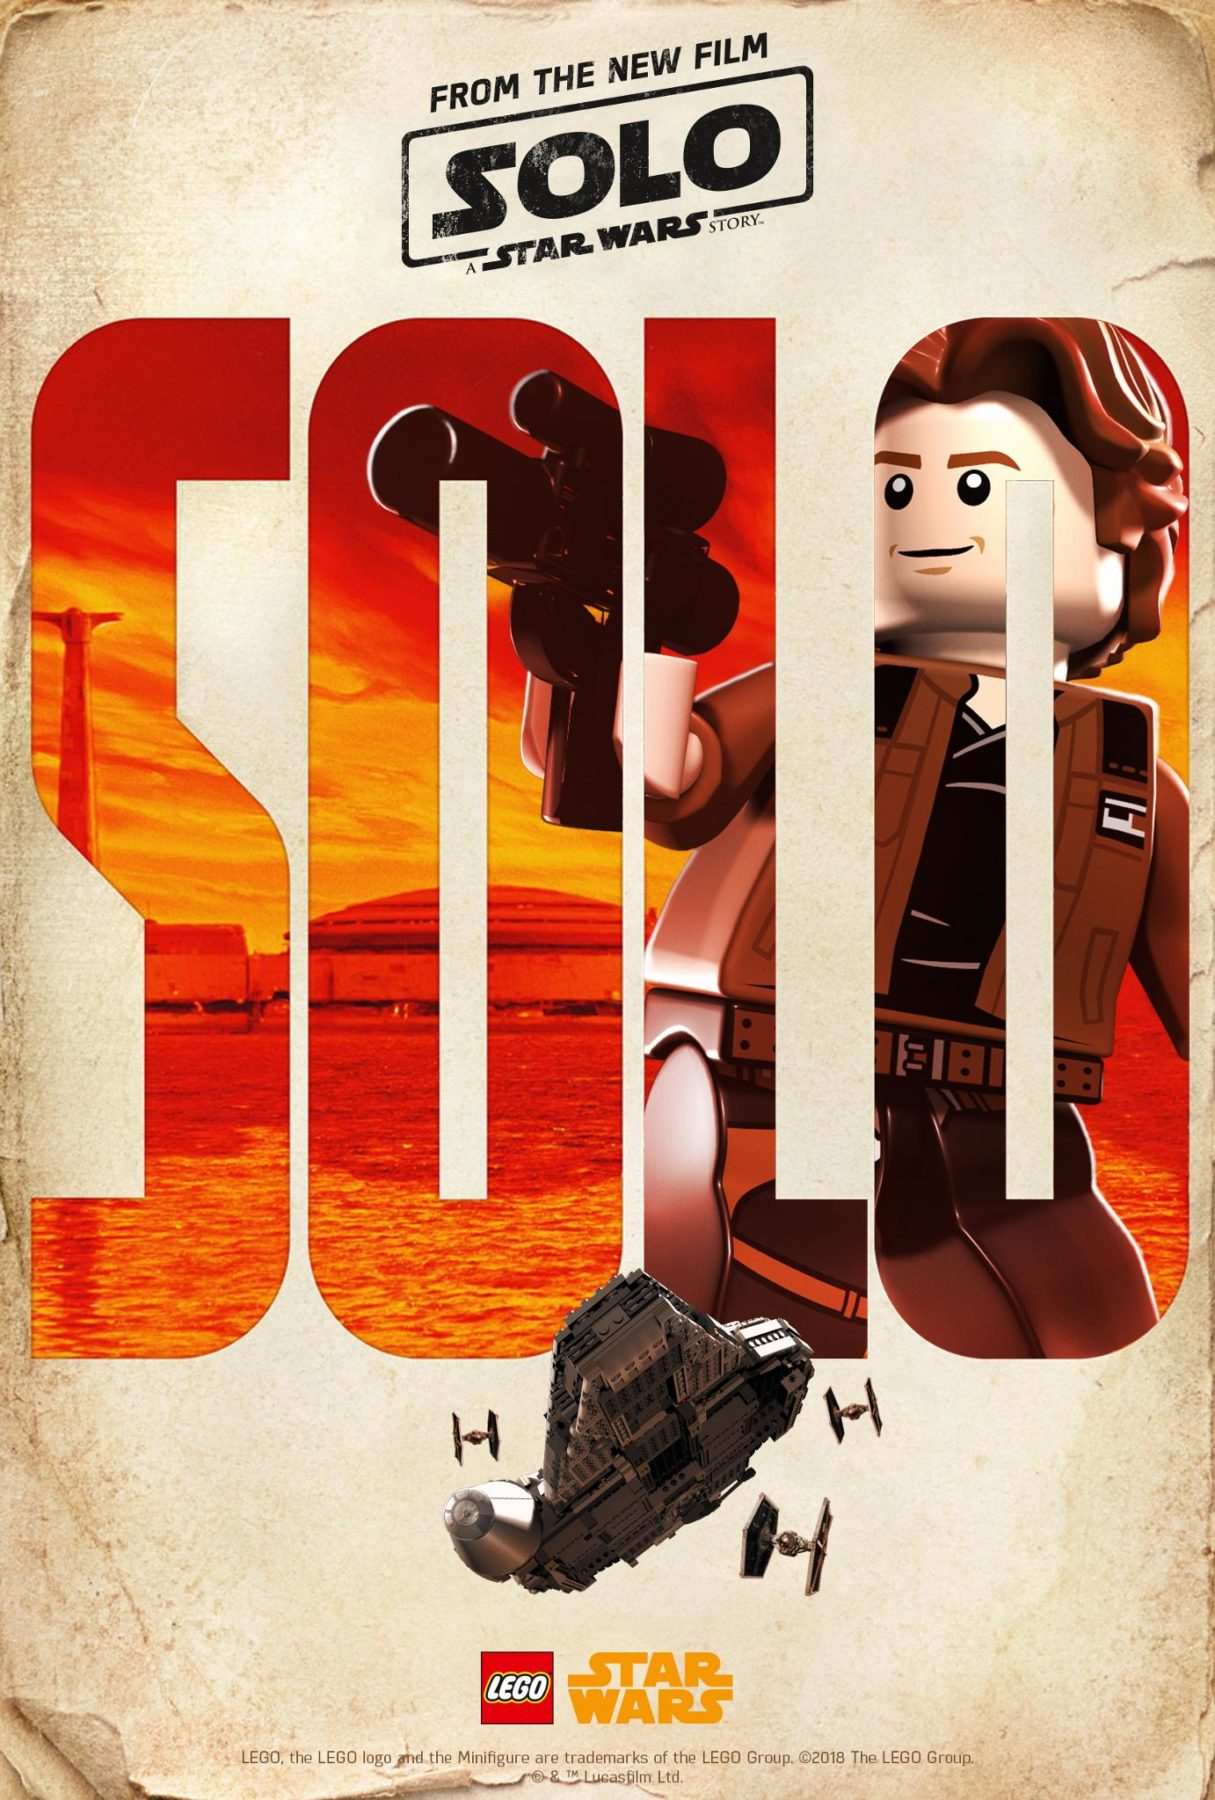 Solo A Star Wars Story Character Posters Get A Lego Makeover